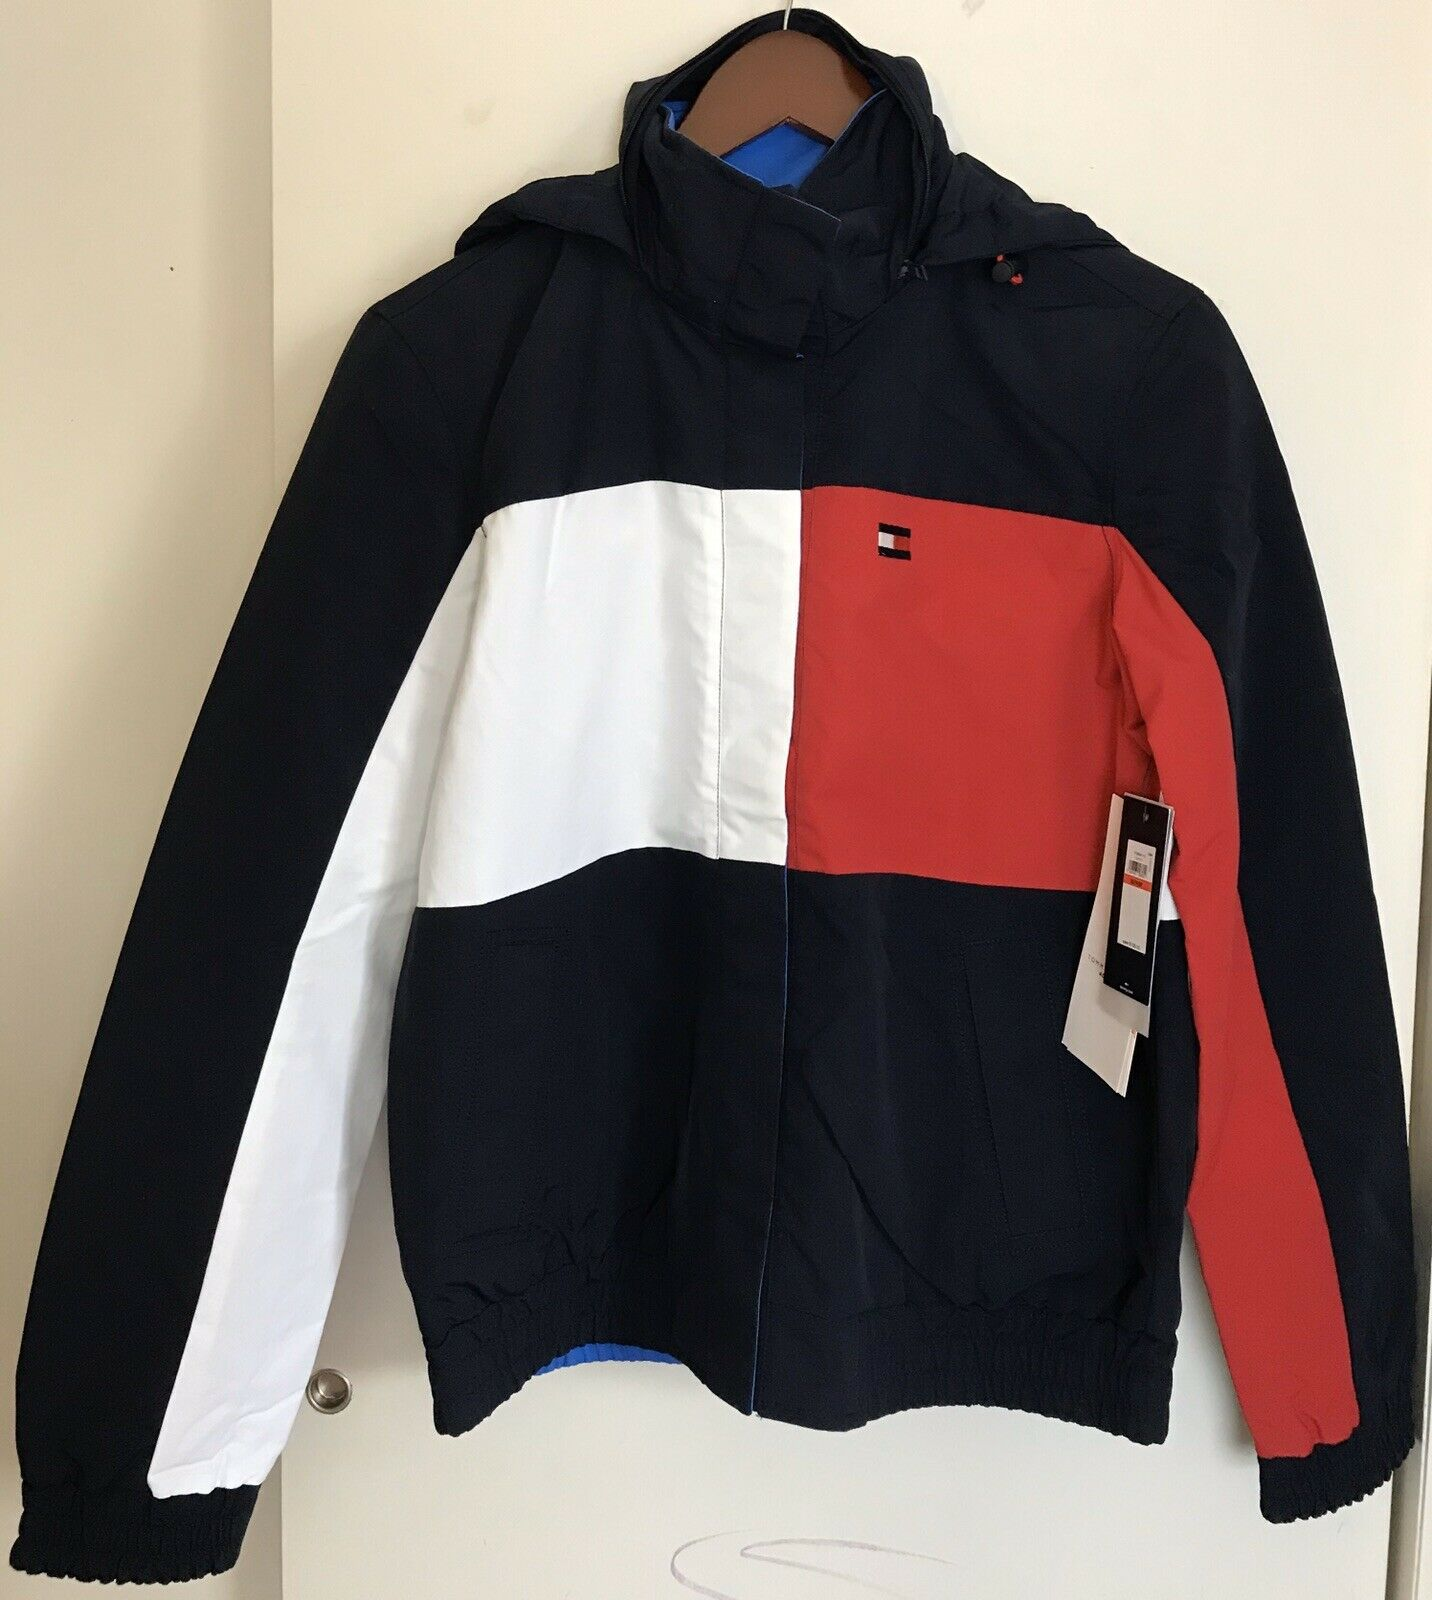 NWT! TOMMY HILFIGER Women's Reversible Jacket XS